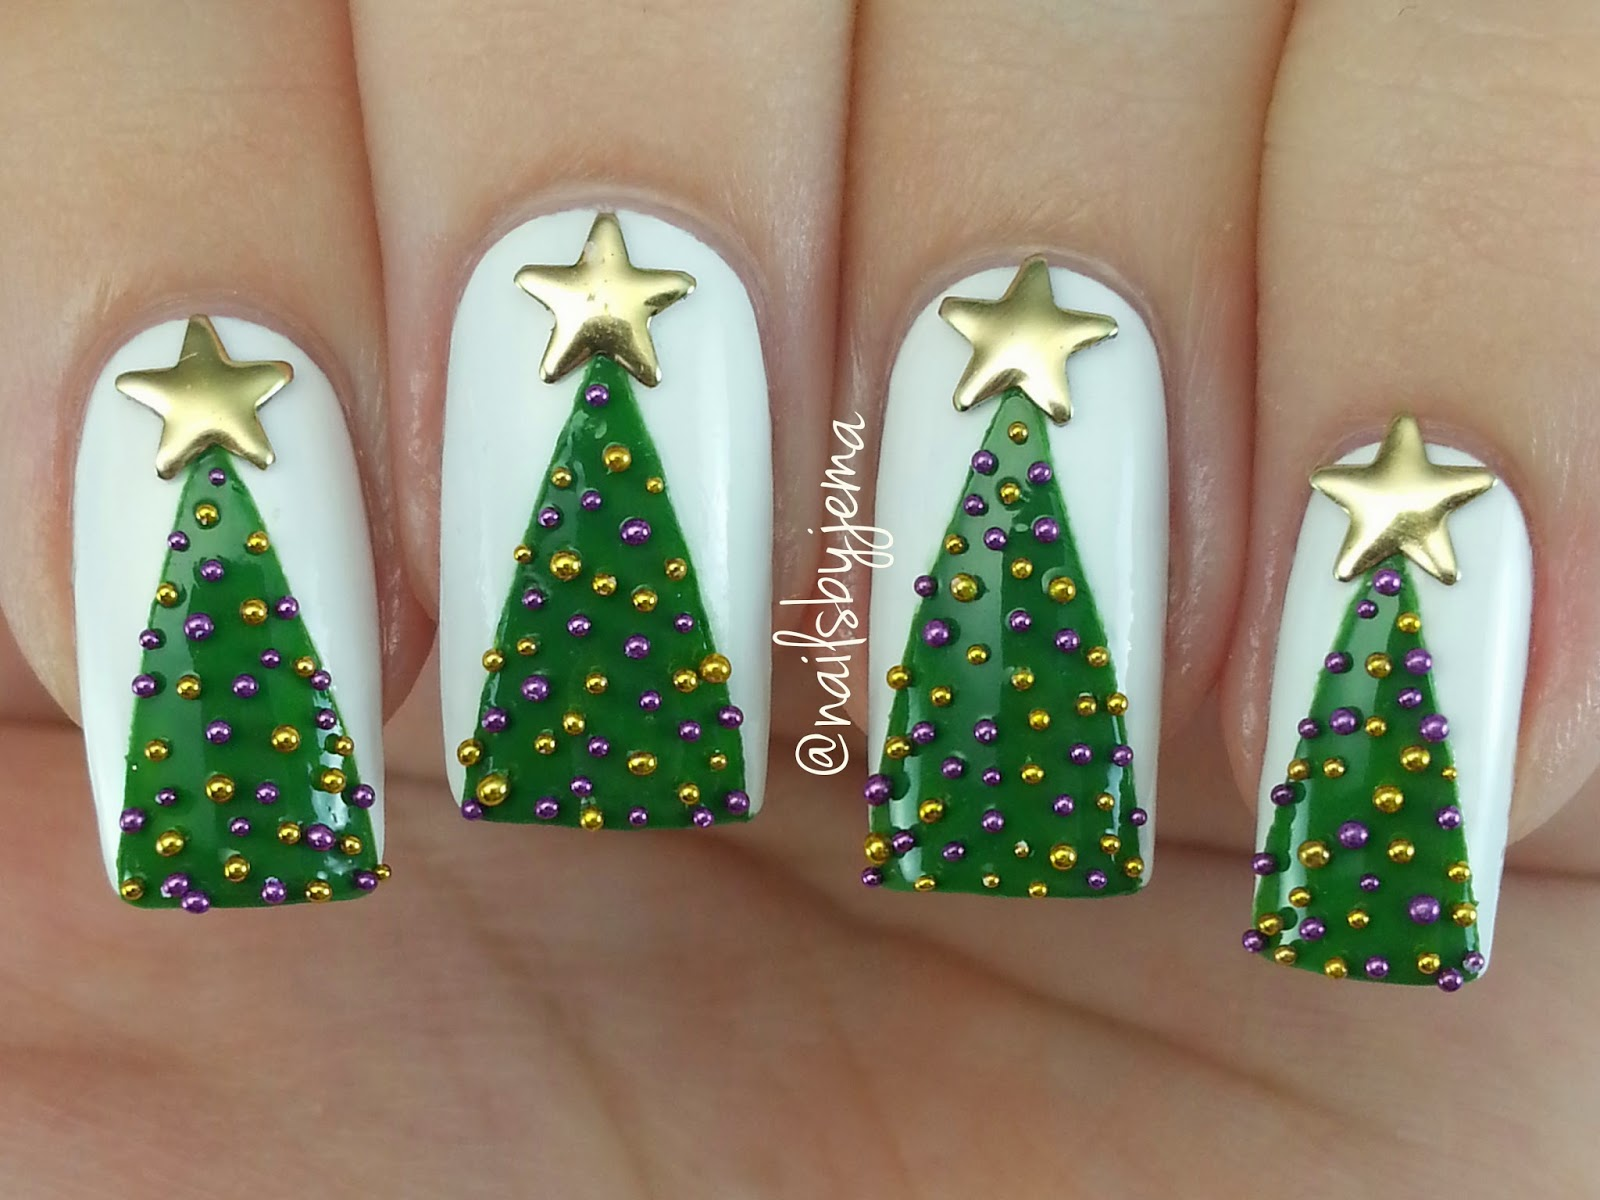 N A I L S B Y J E M A: 3D Christmas Tree Nails & Video Tutorial